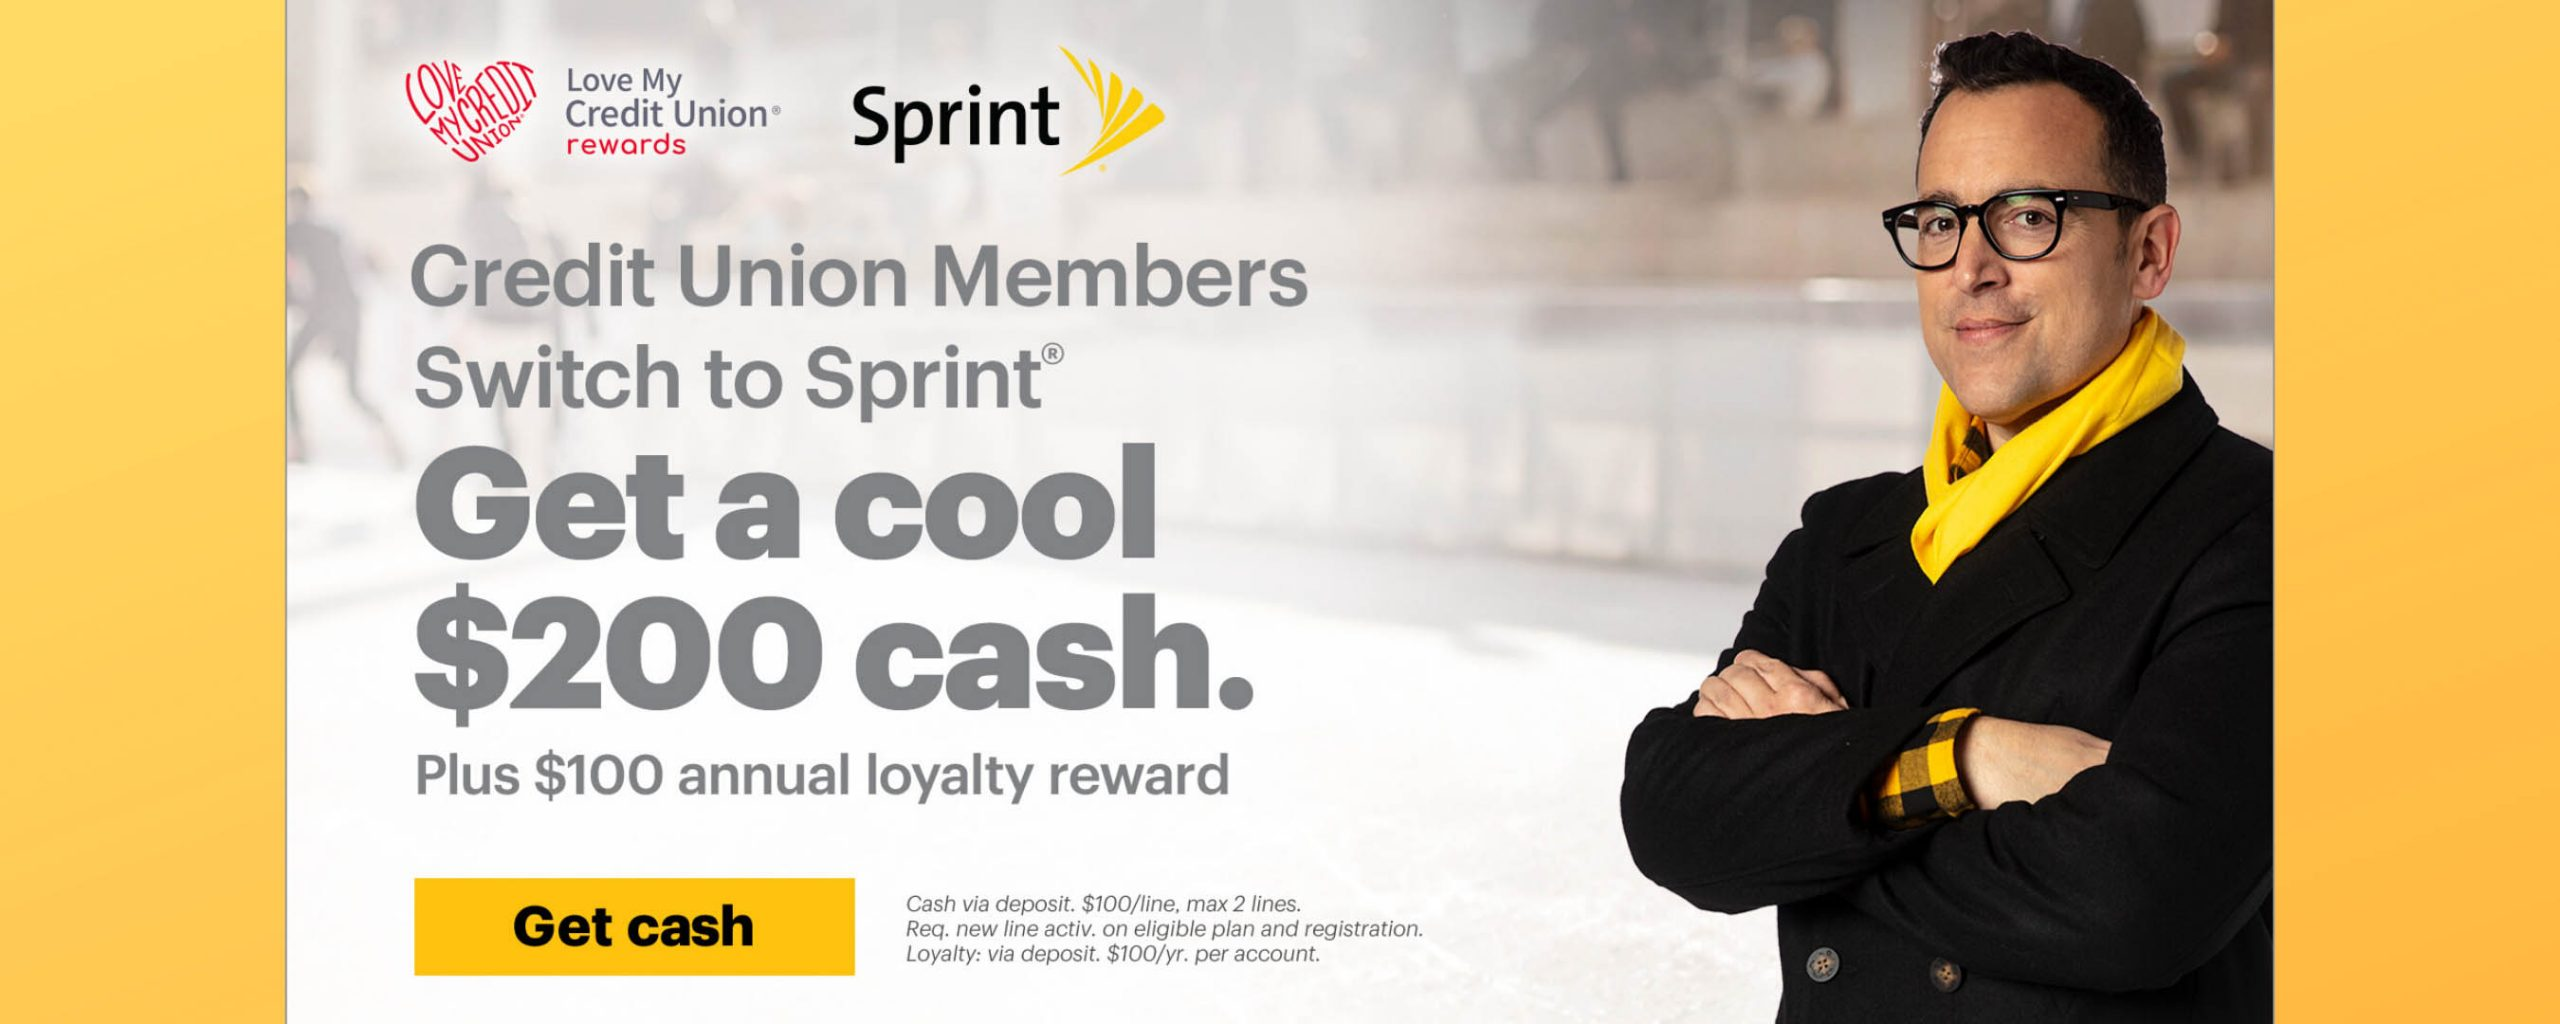 Credit Union Members Get $200 From Sprint